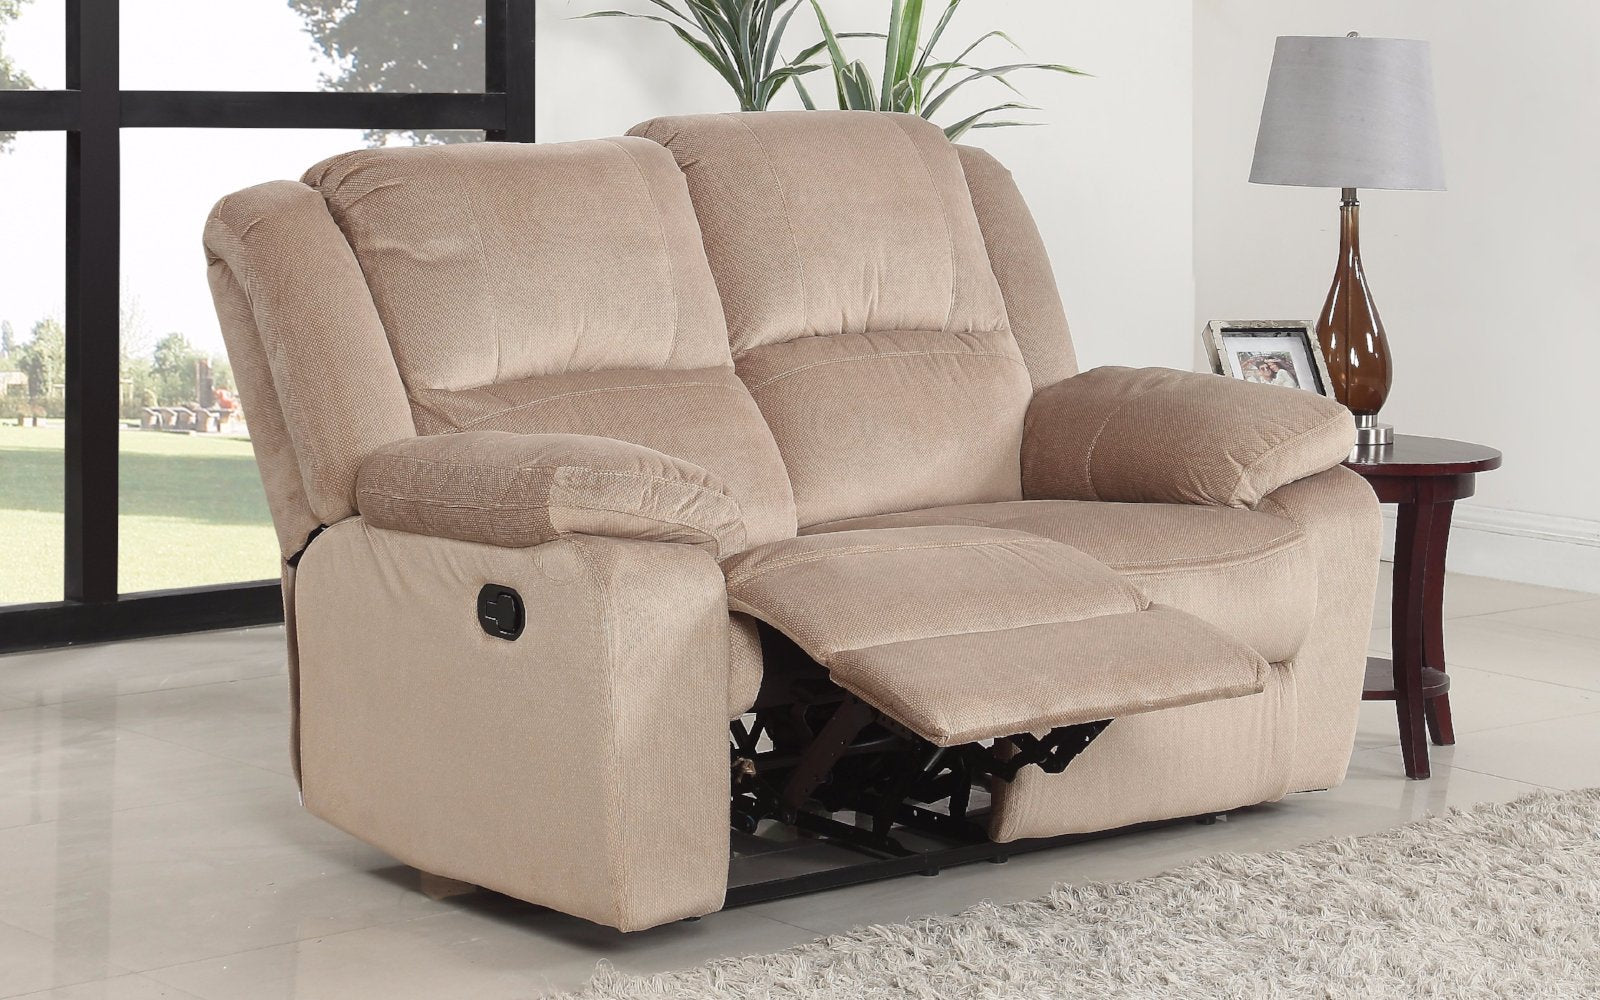 ... Asturias Traditional Classic Microfiber Double Recliner Loveseat Lifestyle ... & reclining loveseat - Sofamania islam-shia.org